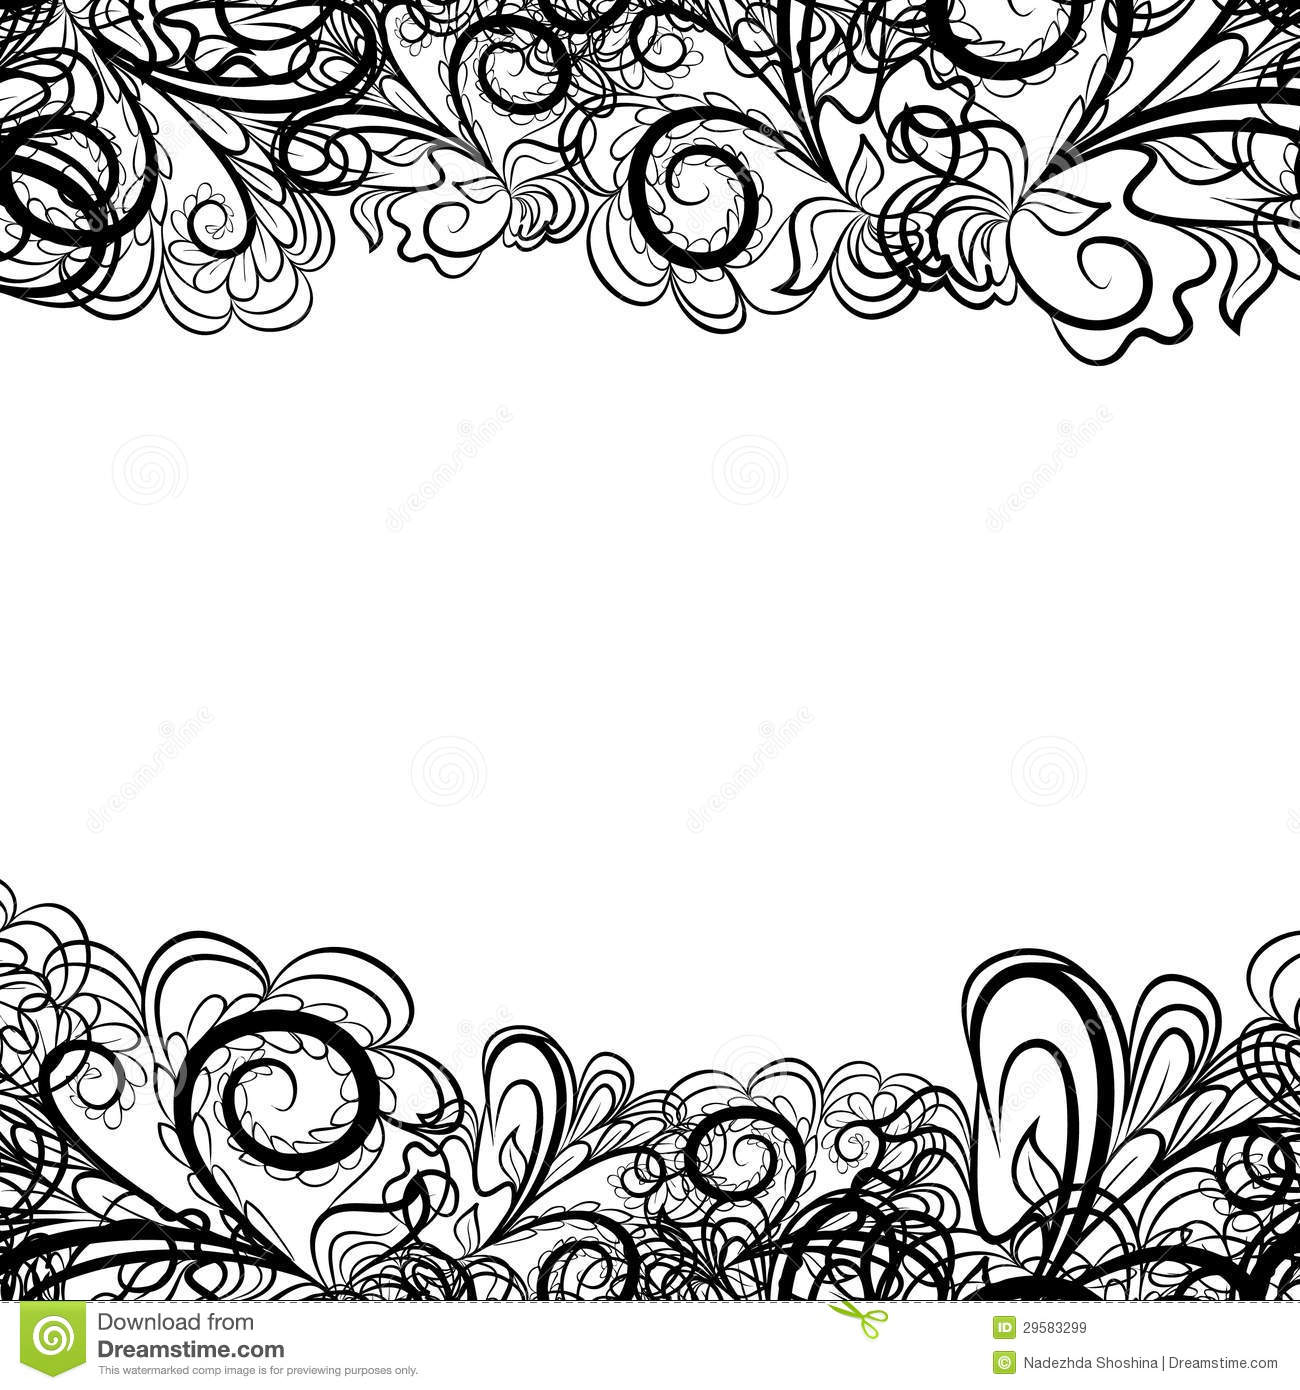 Lace border clipart png royalty free library Vintage Lace Clipart | Free download best Vintage Lace Clipart on ... png royalty free library